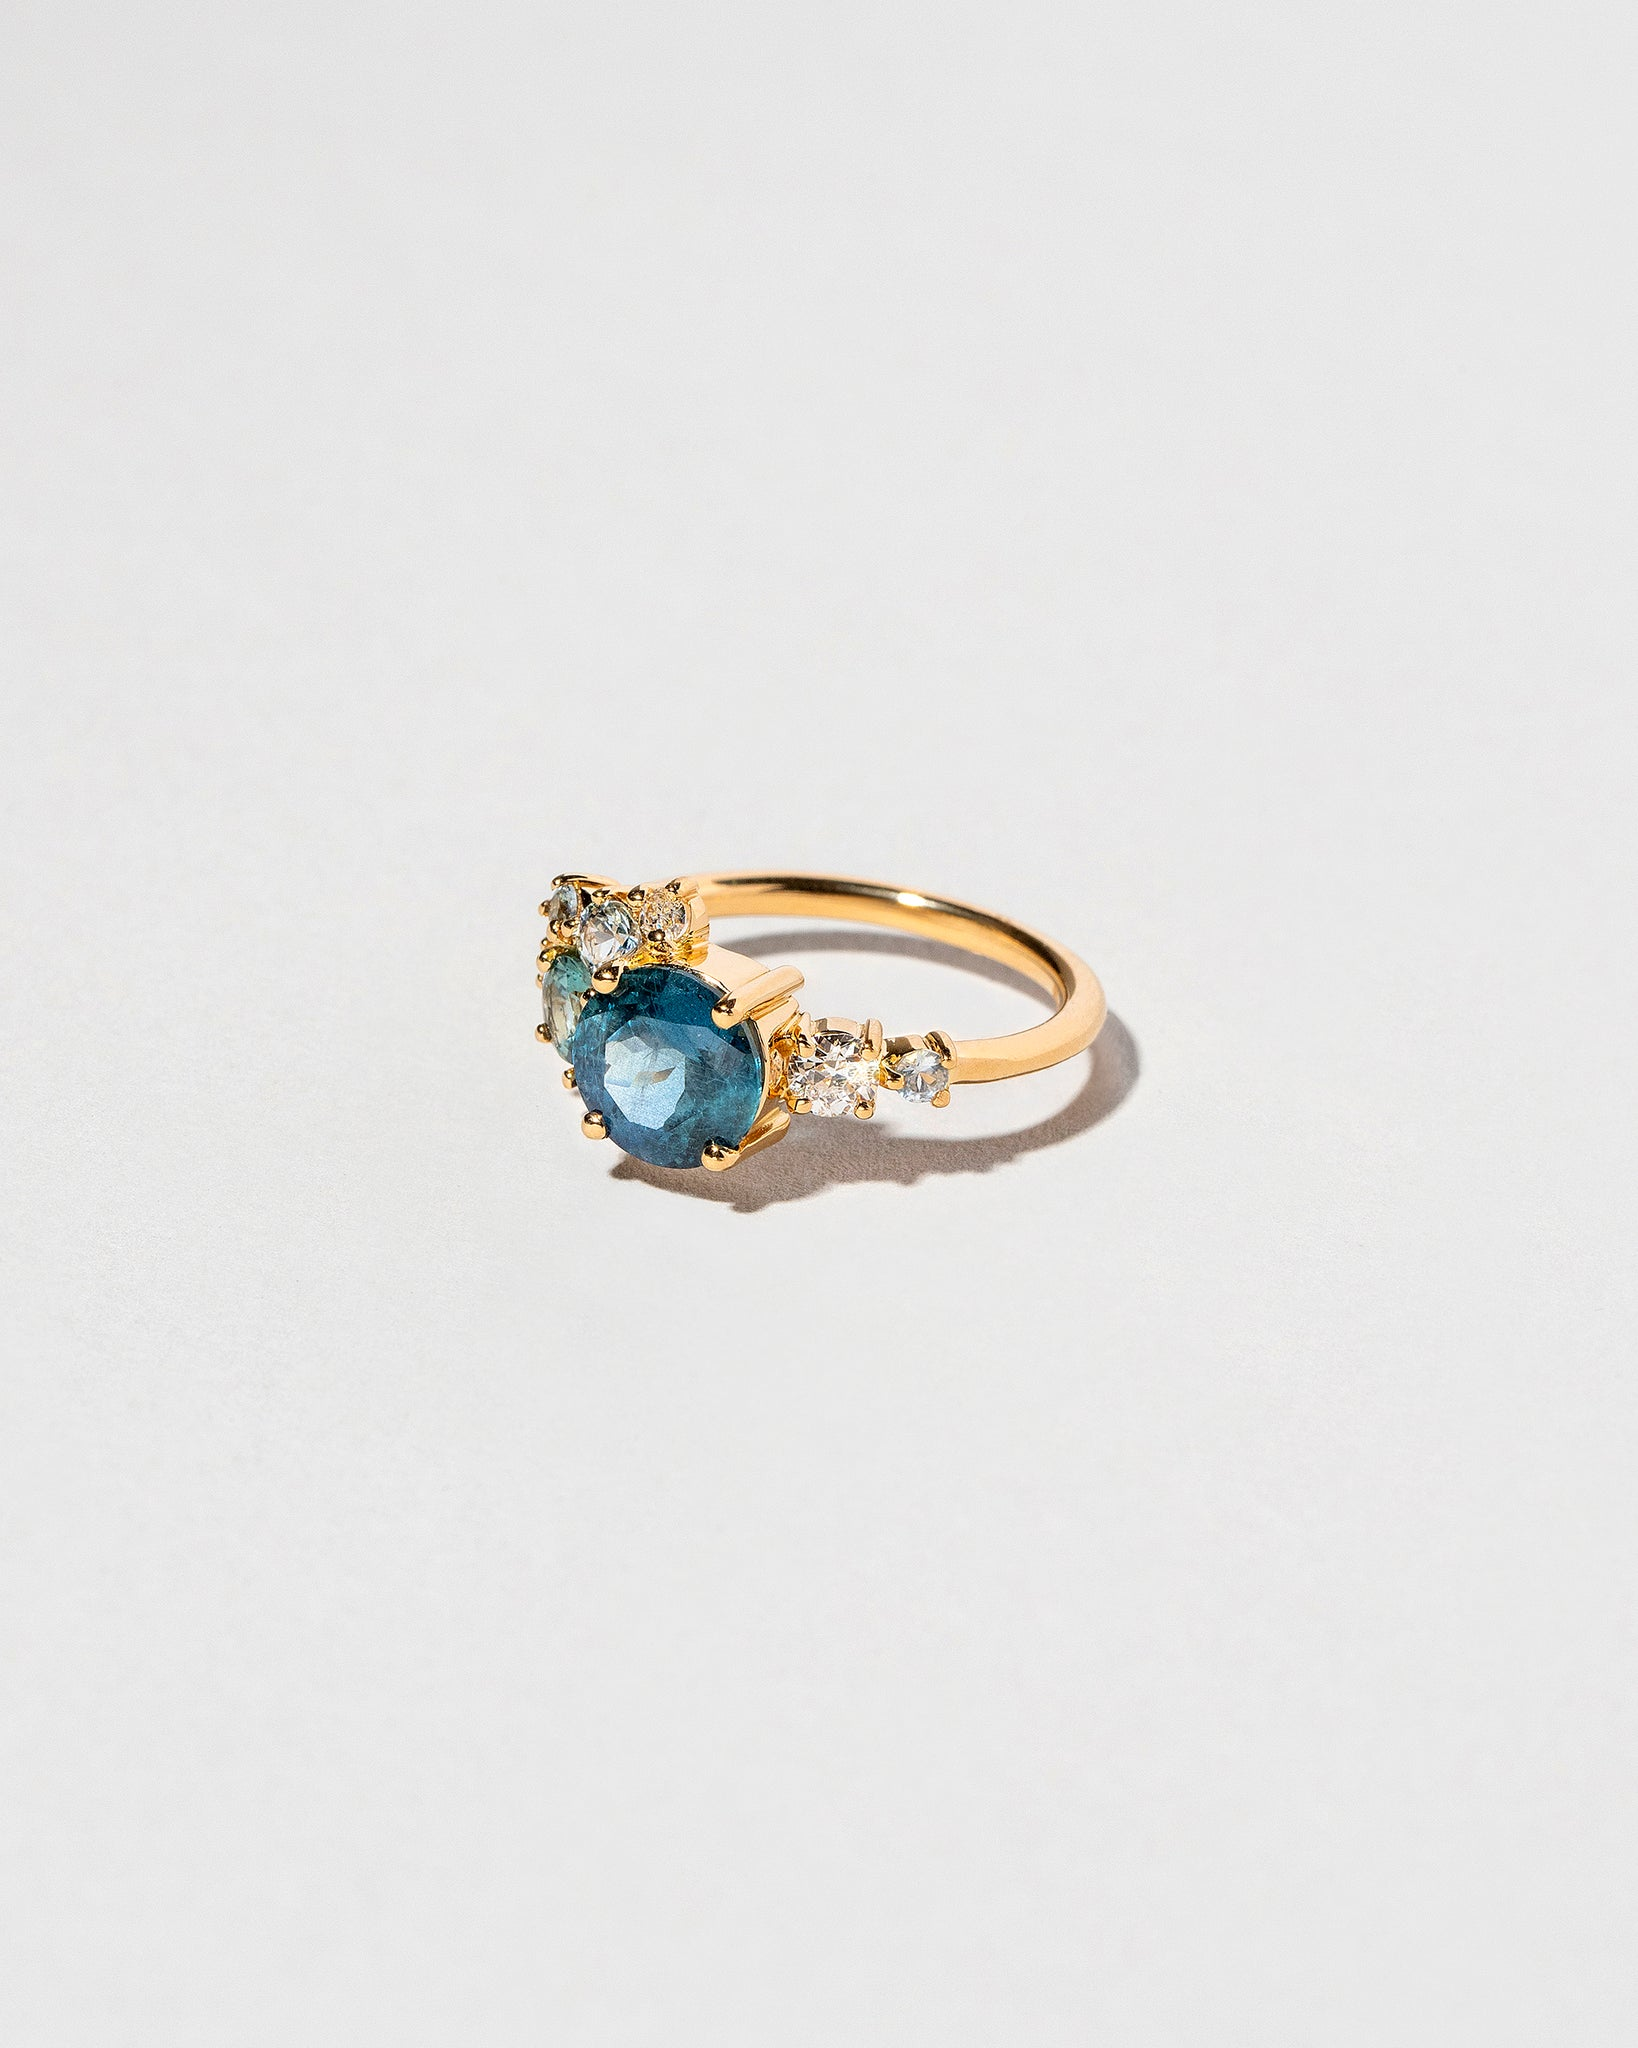 Vega Ring - Malawi Sapphire on light color background